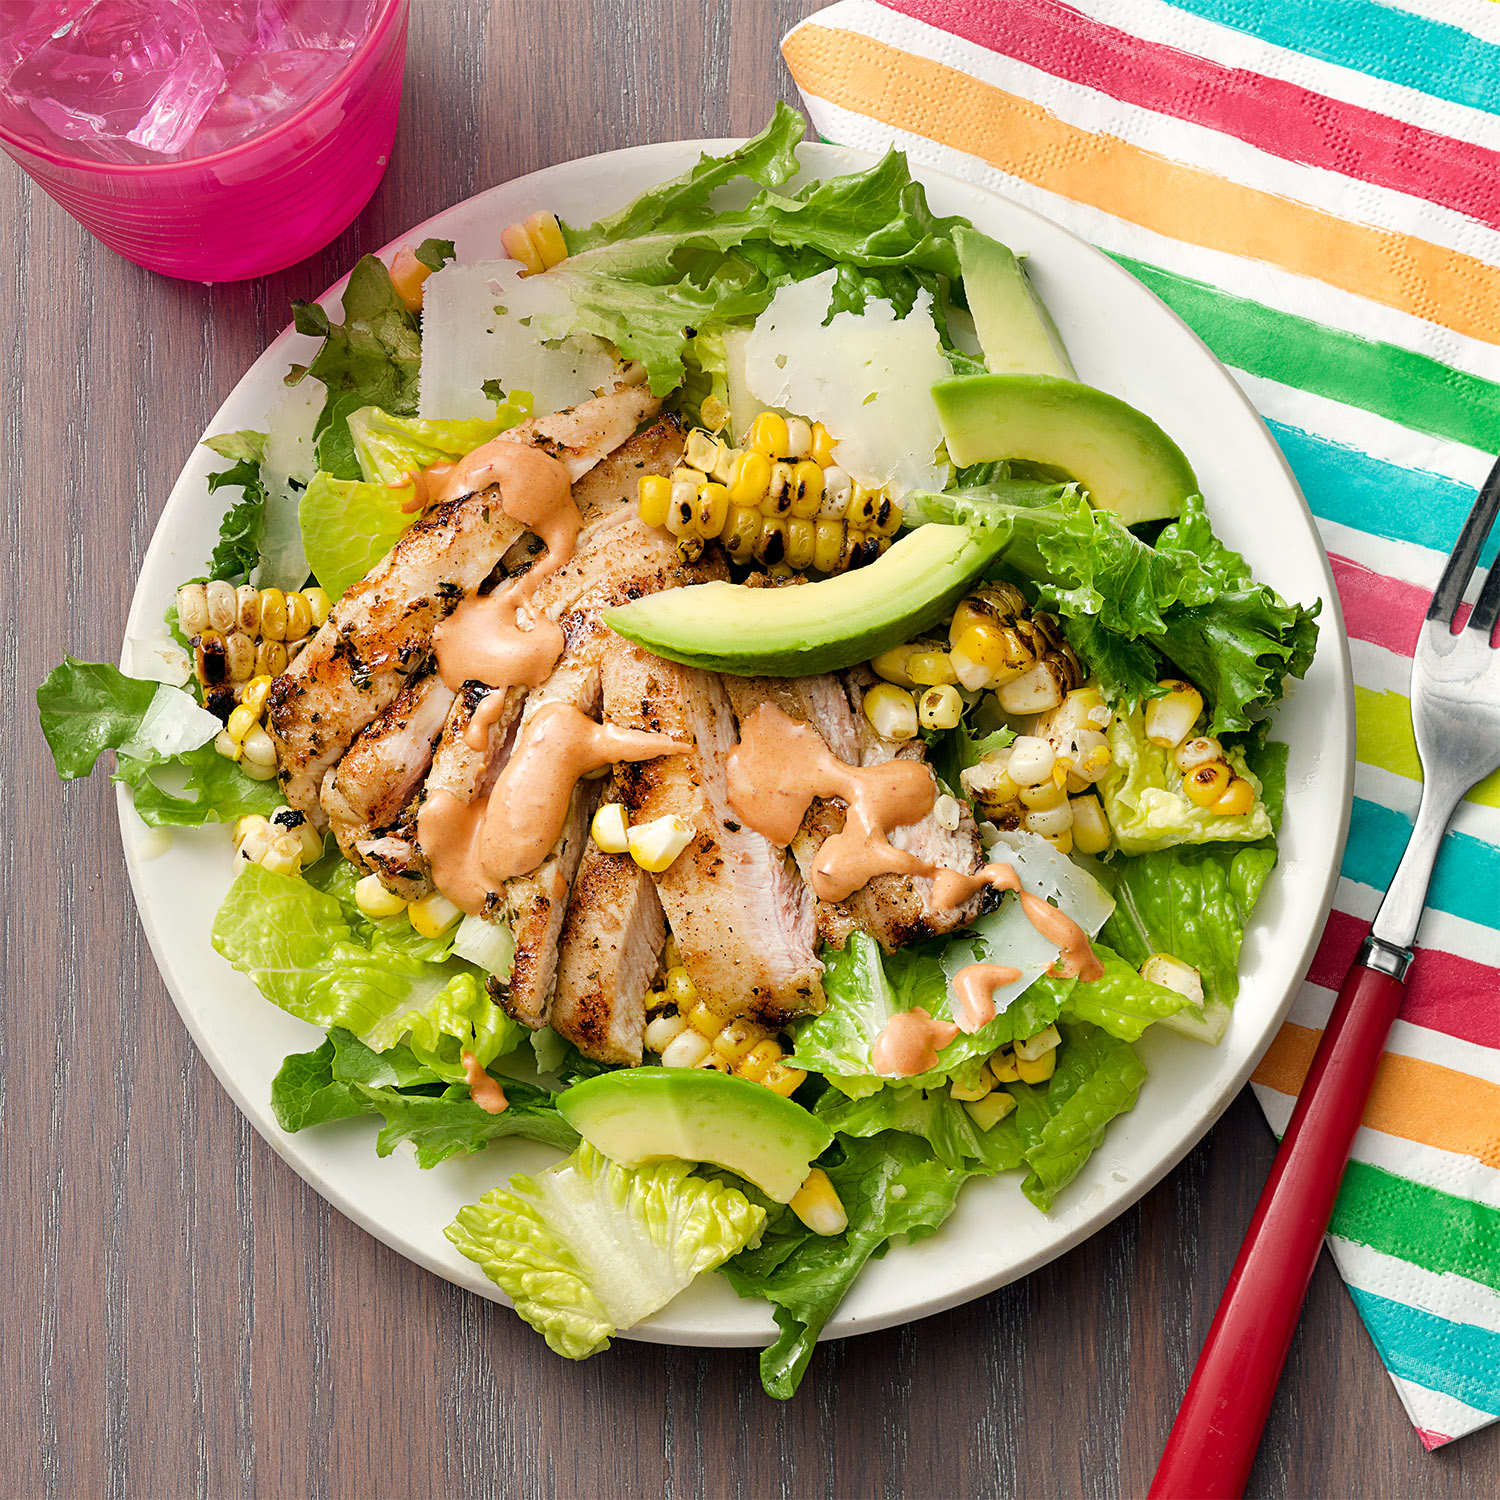 Grilled Chicken & Corn Salad with Chipotle Crema